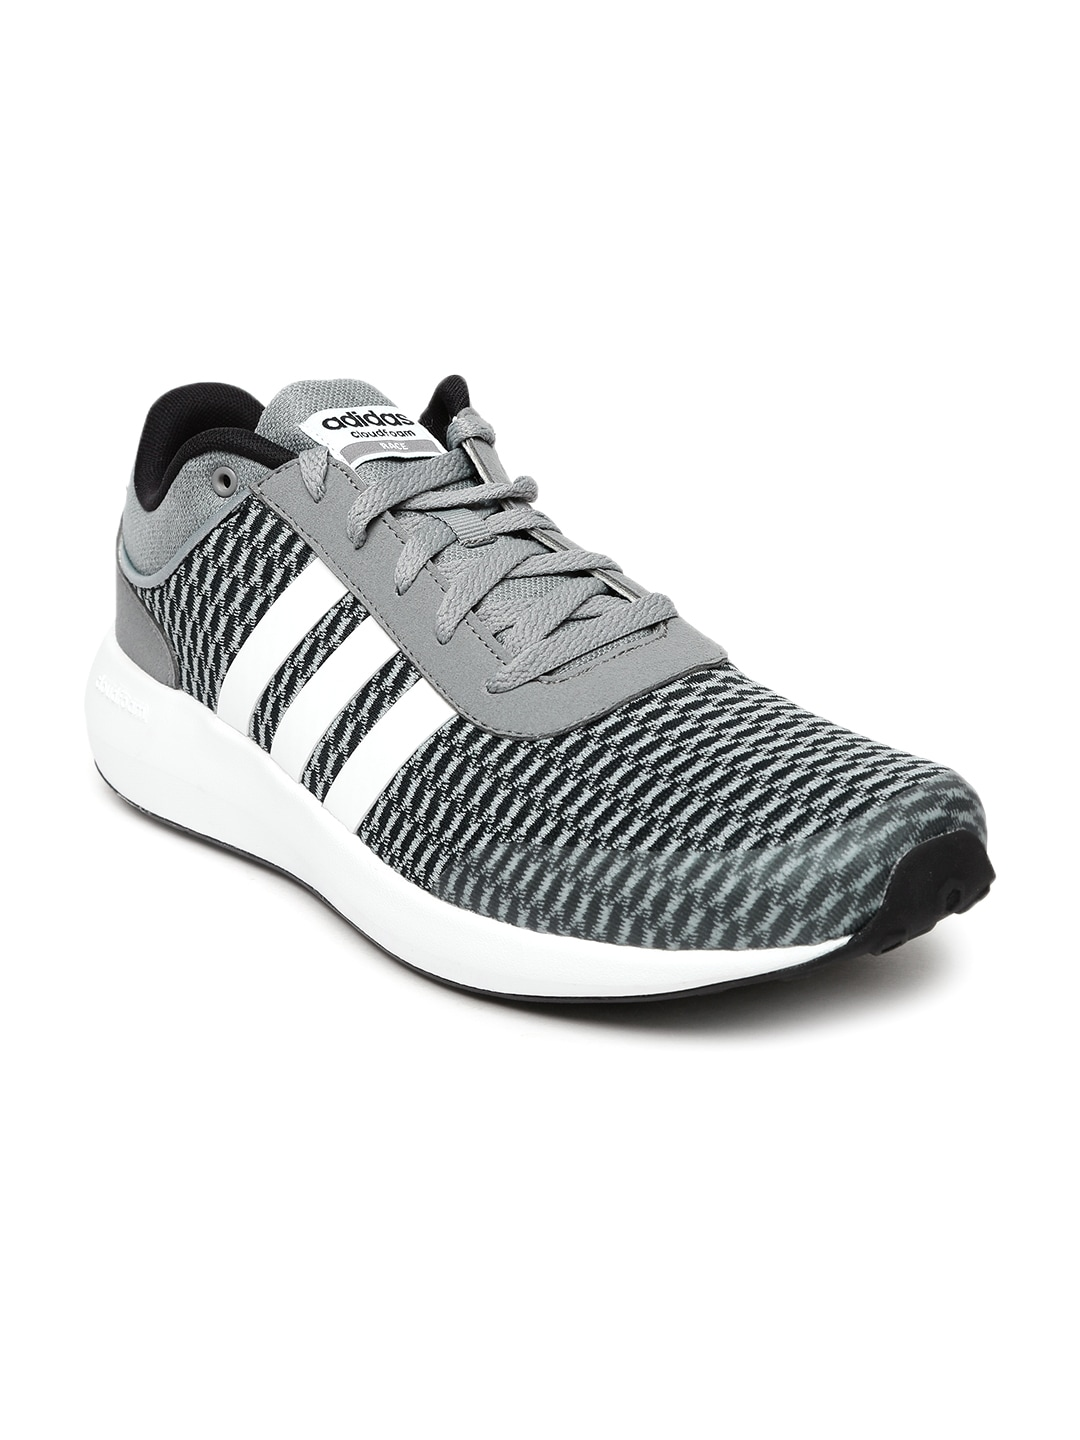 ed3a0909f887ad Adidas neo aw5327 Men Grey Cloudfoam Race Sneakers - Best Price ...